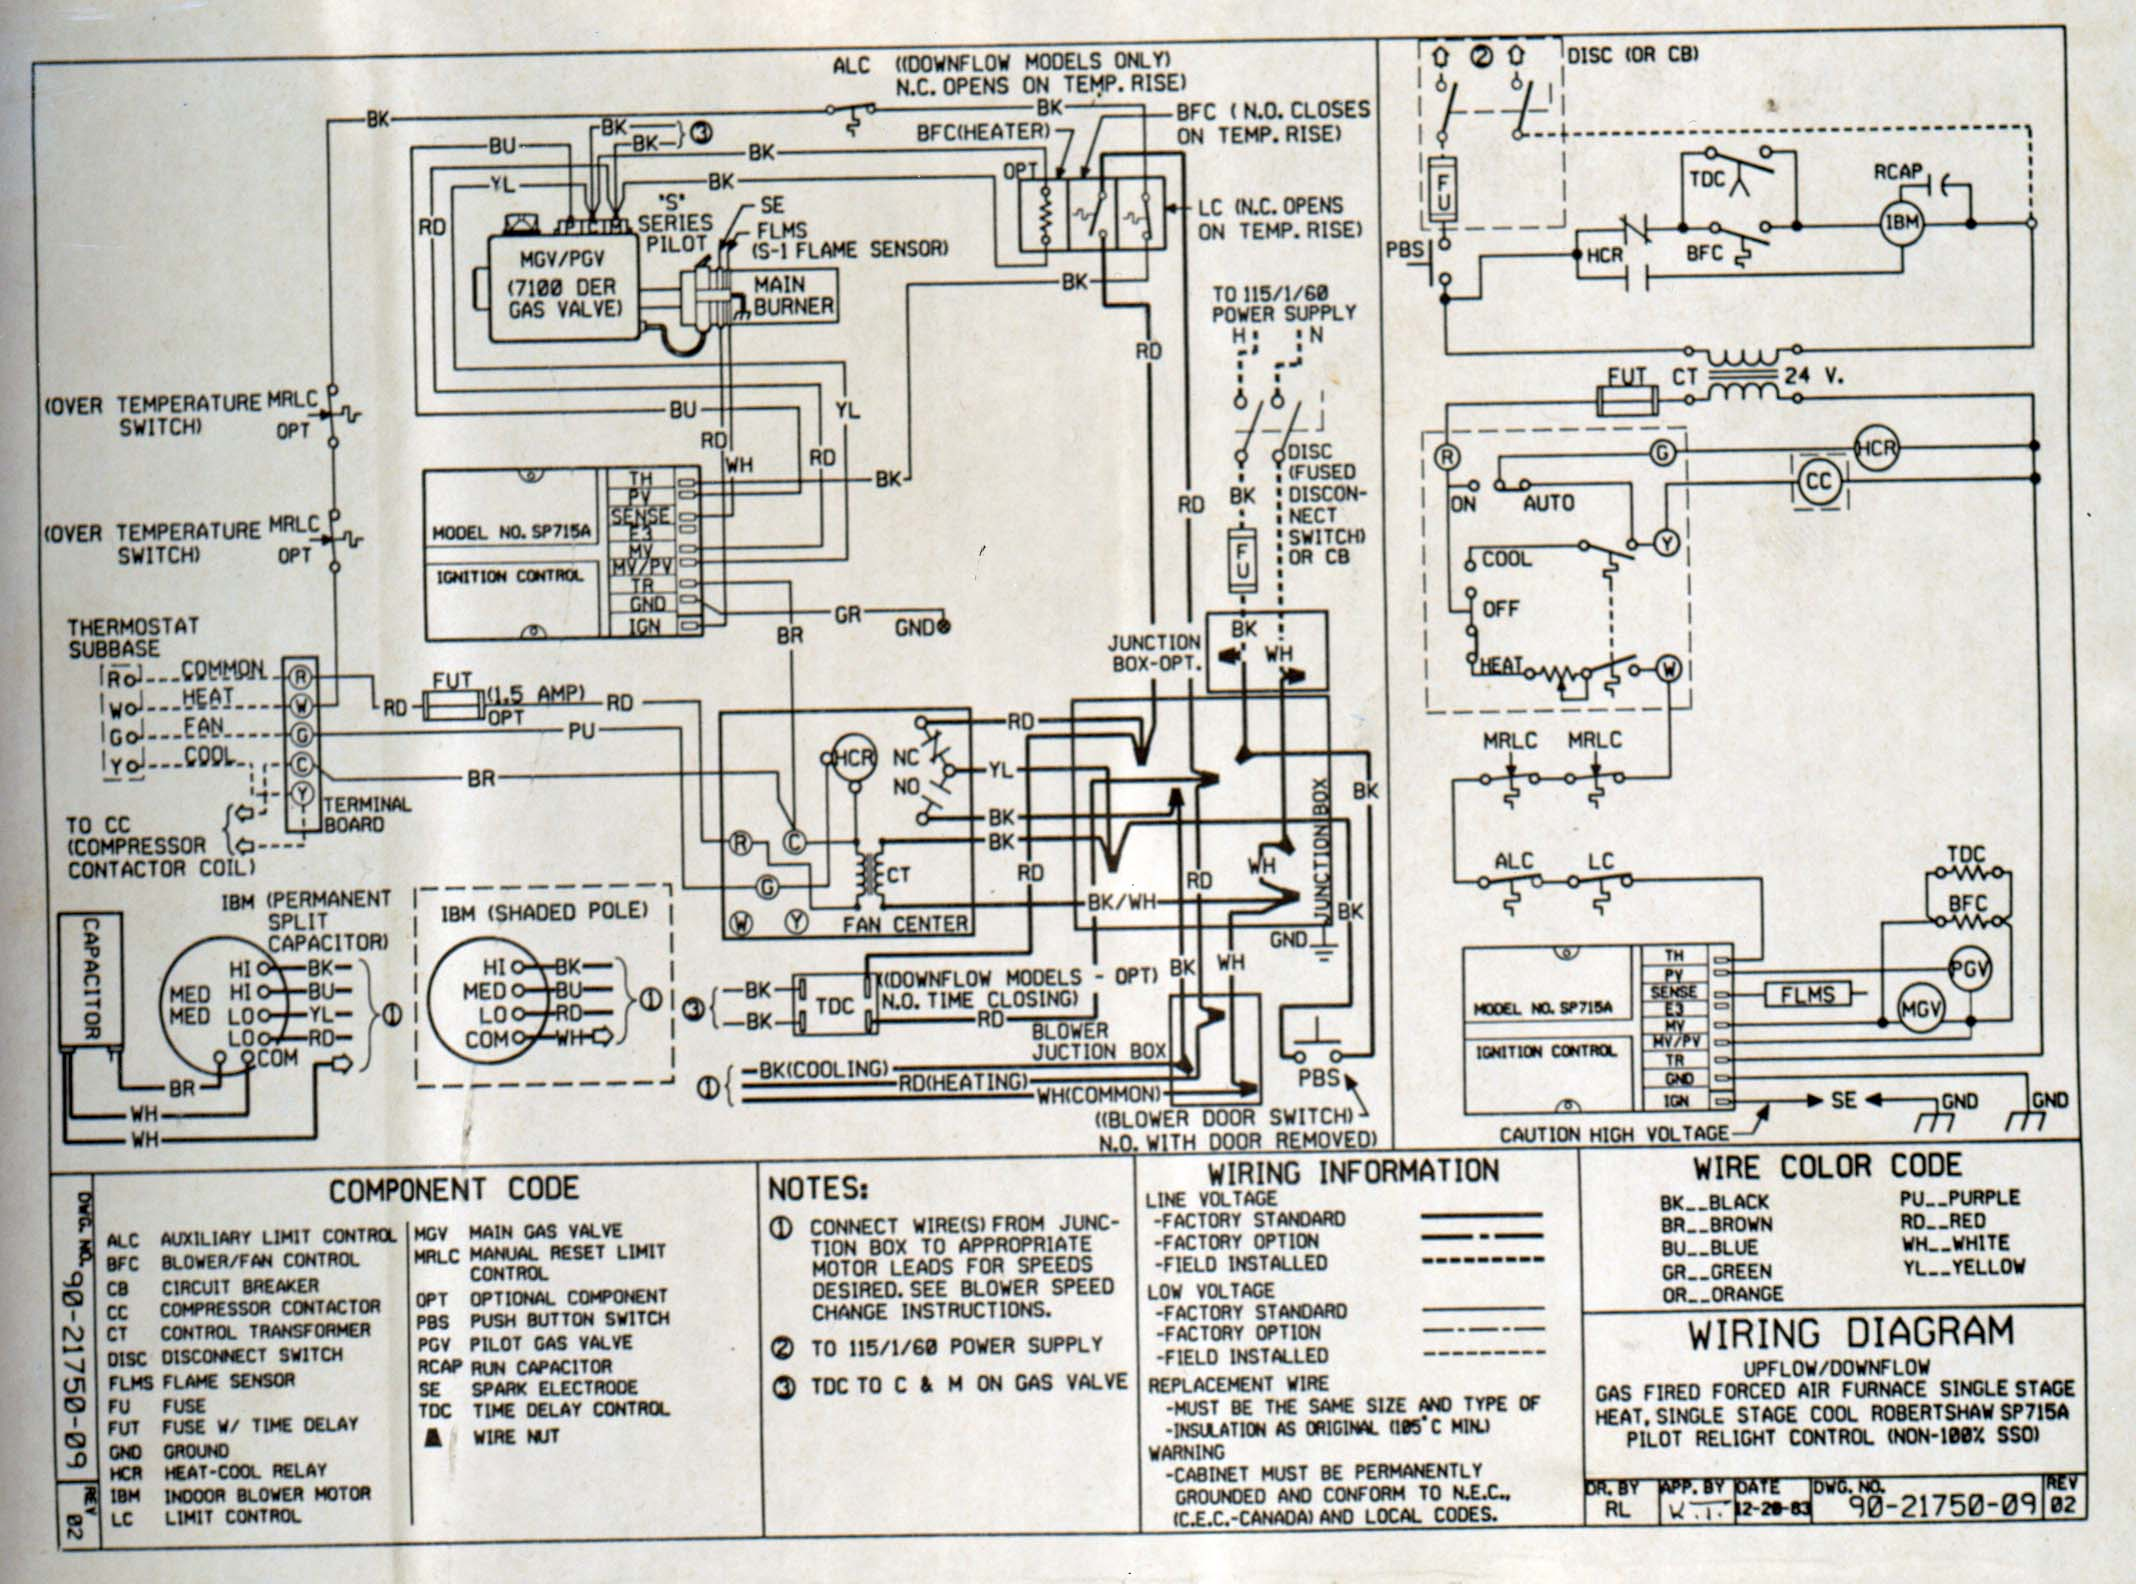 wiring diagram older furnace ducane furnace wiring diagram older furnace heater relay furnace fan won't stop running after the heating cycle is done